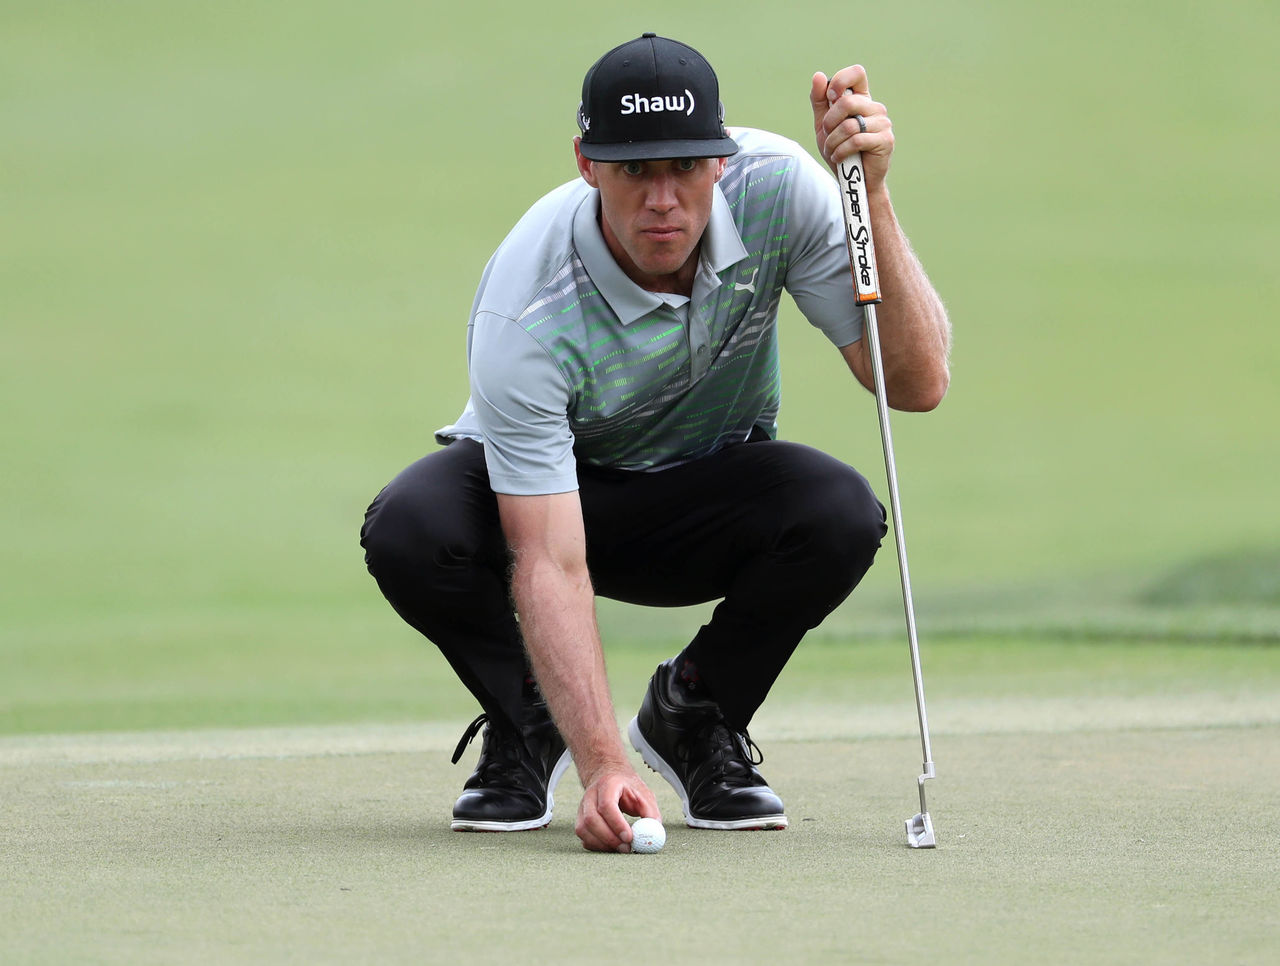 Cropped 2017 02 25t201808z 63108849 nocid rtrmadp 3 pga the honda classic third round